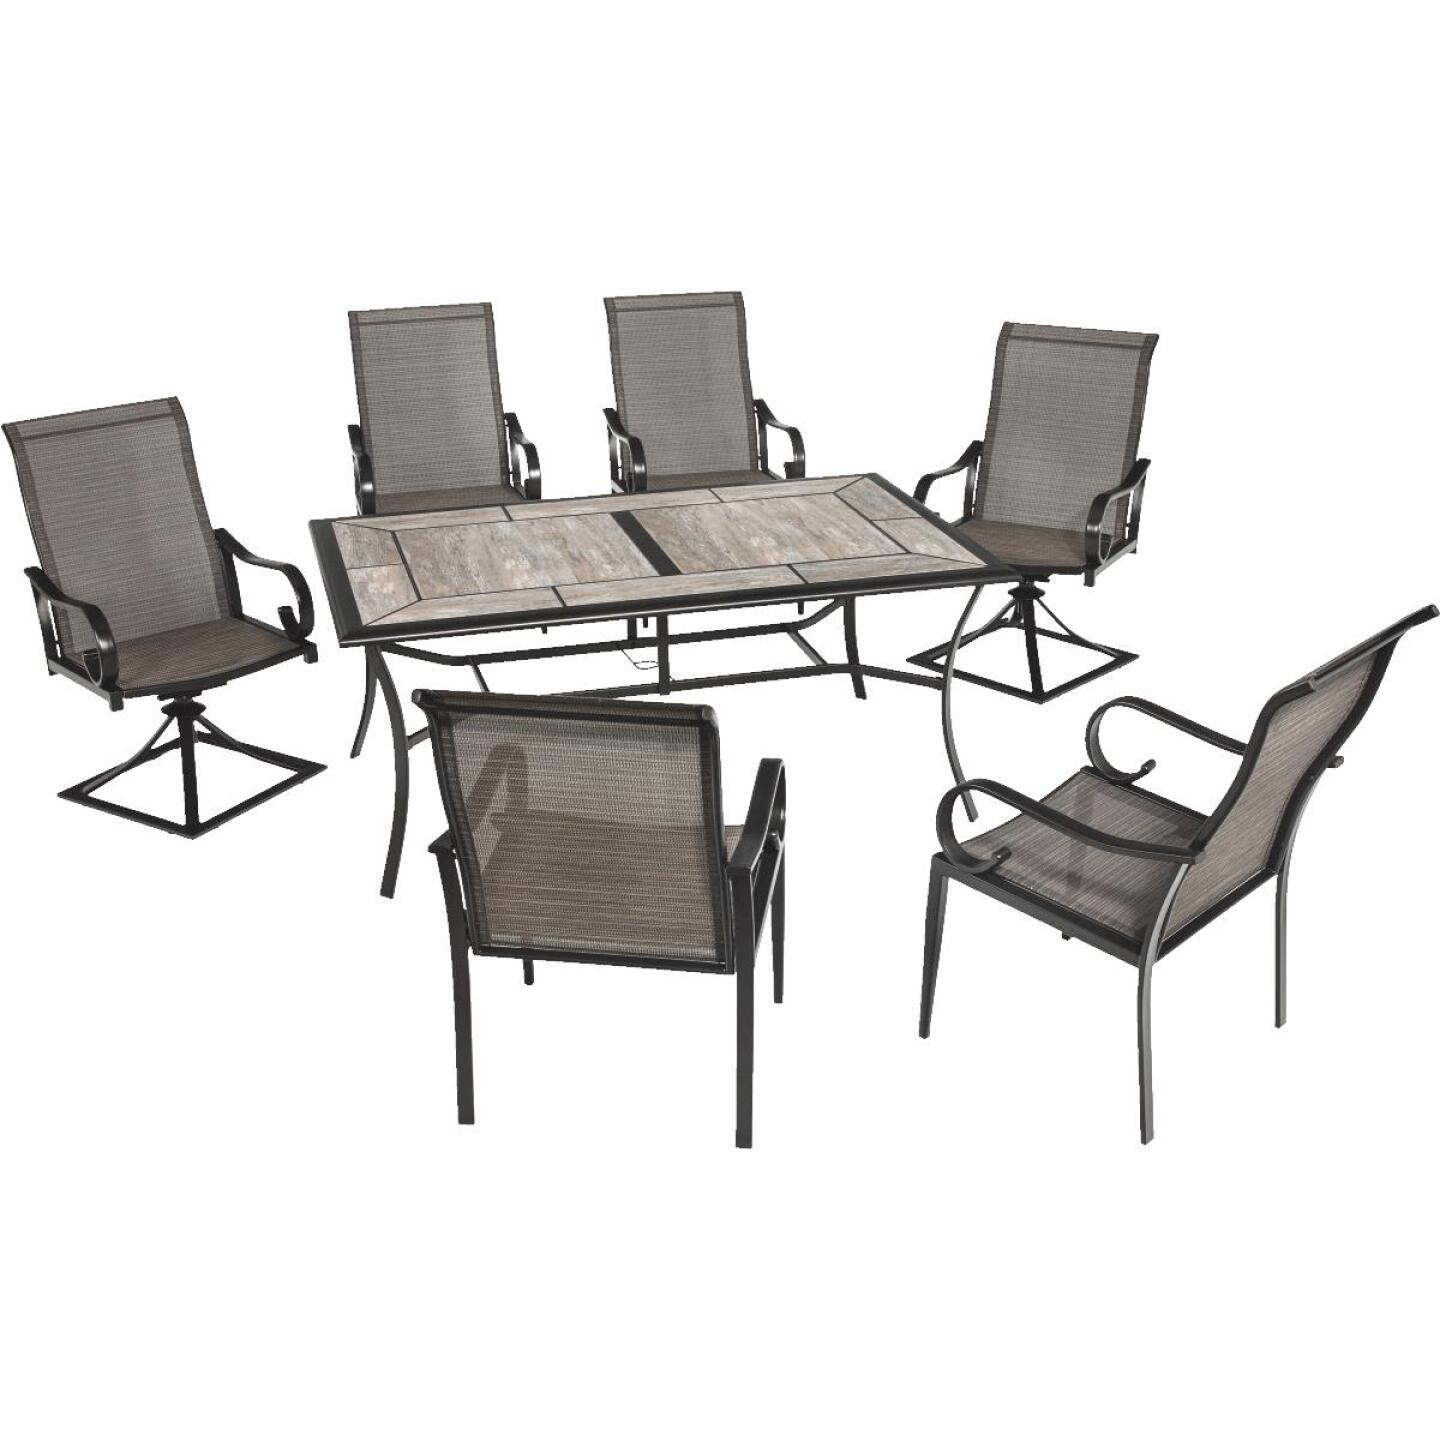 Outdoor Expressions Berkshire 7-Piece Dining Set Image 141